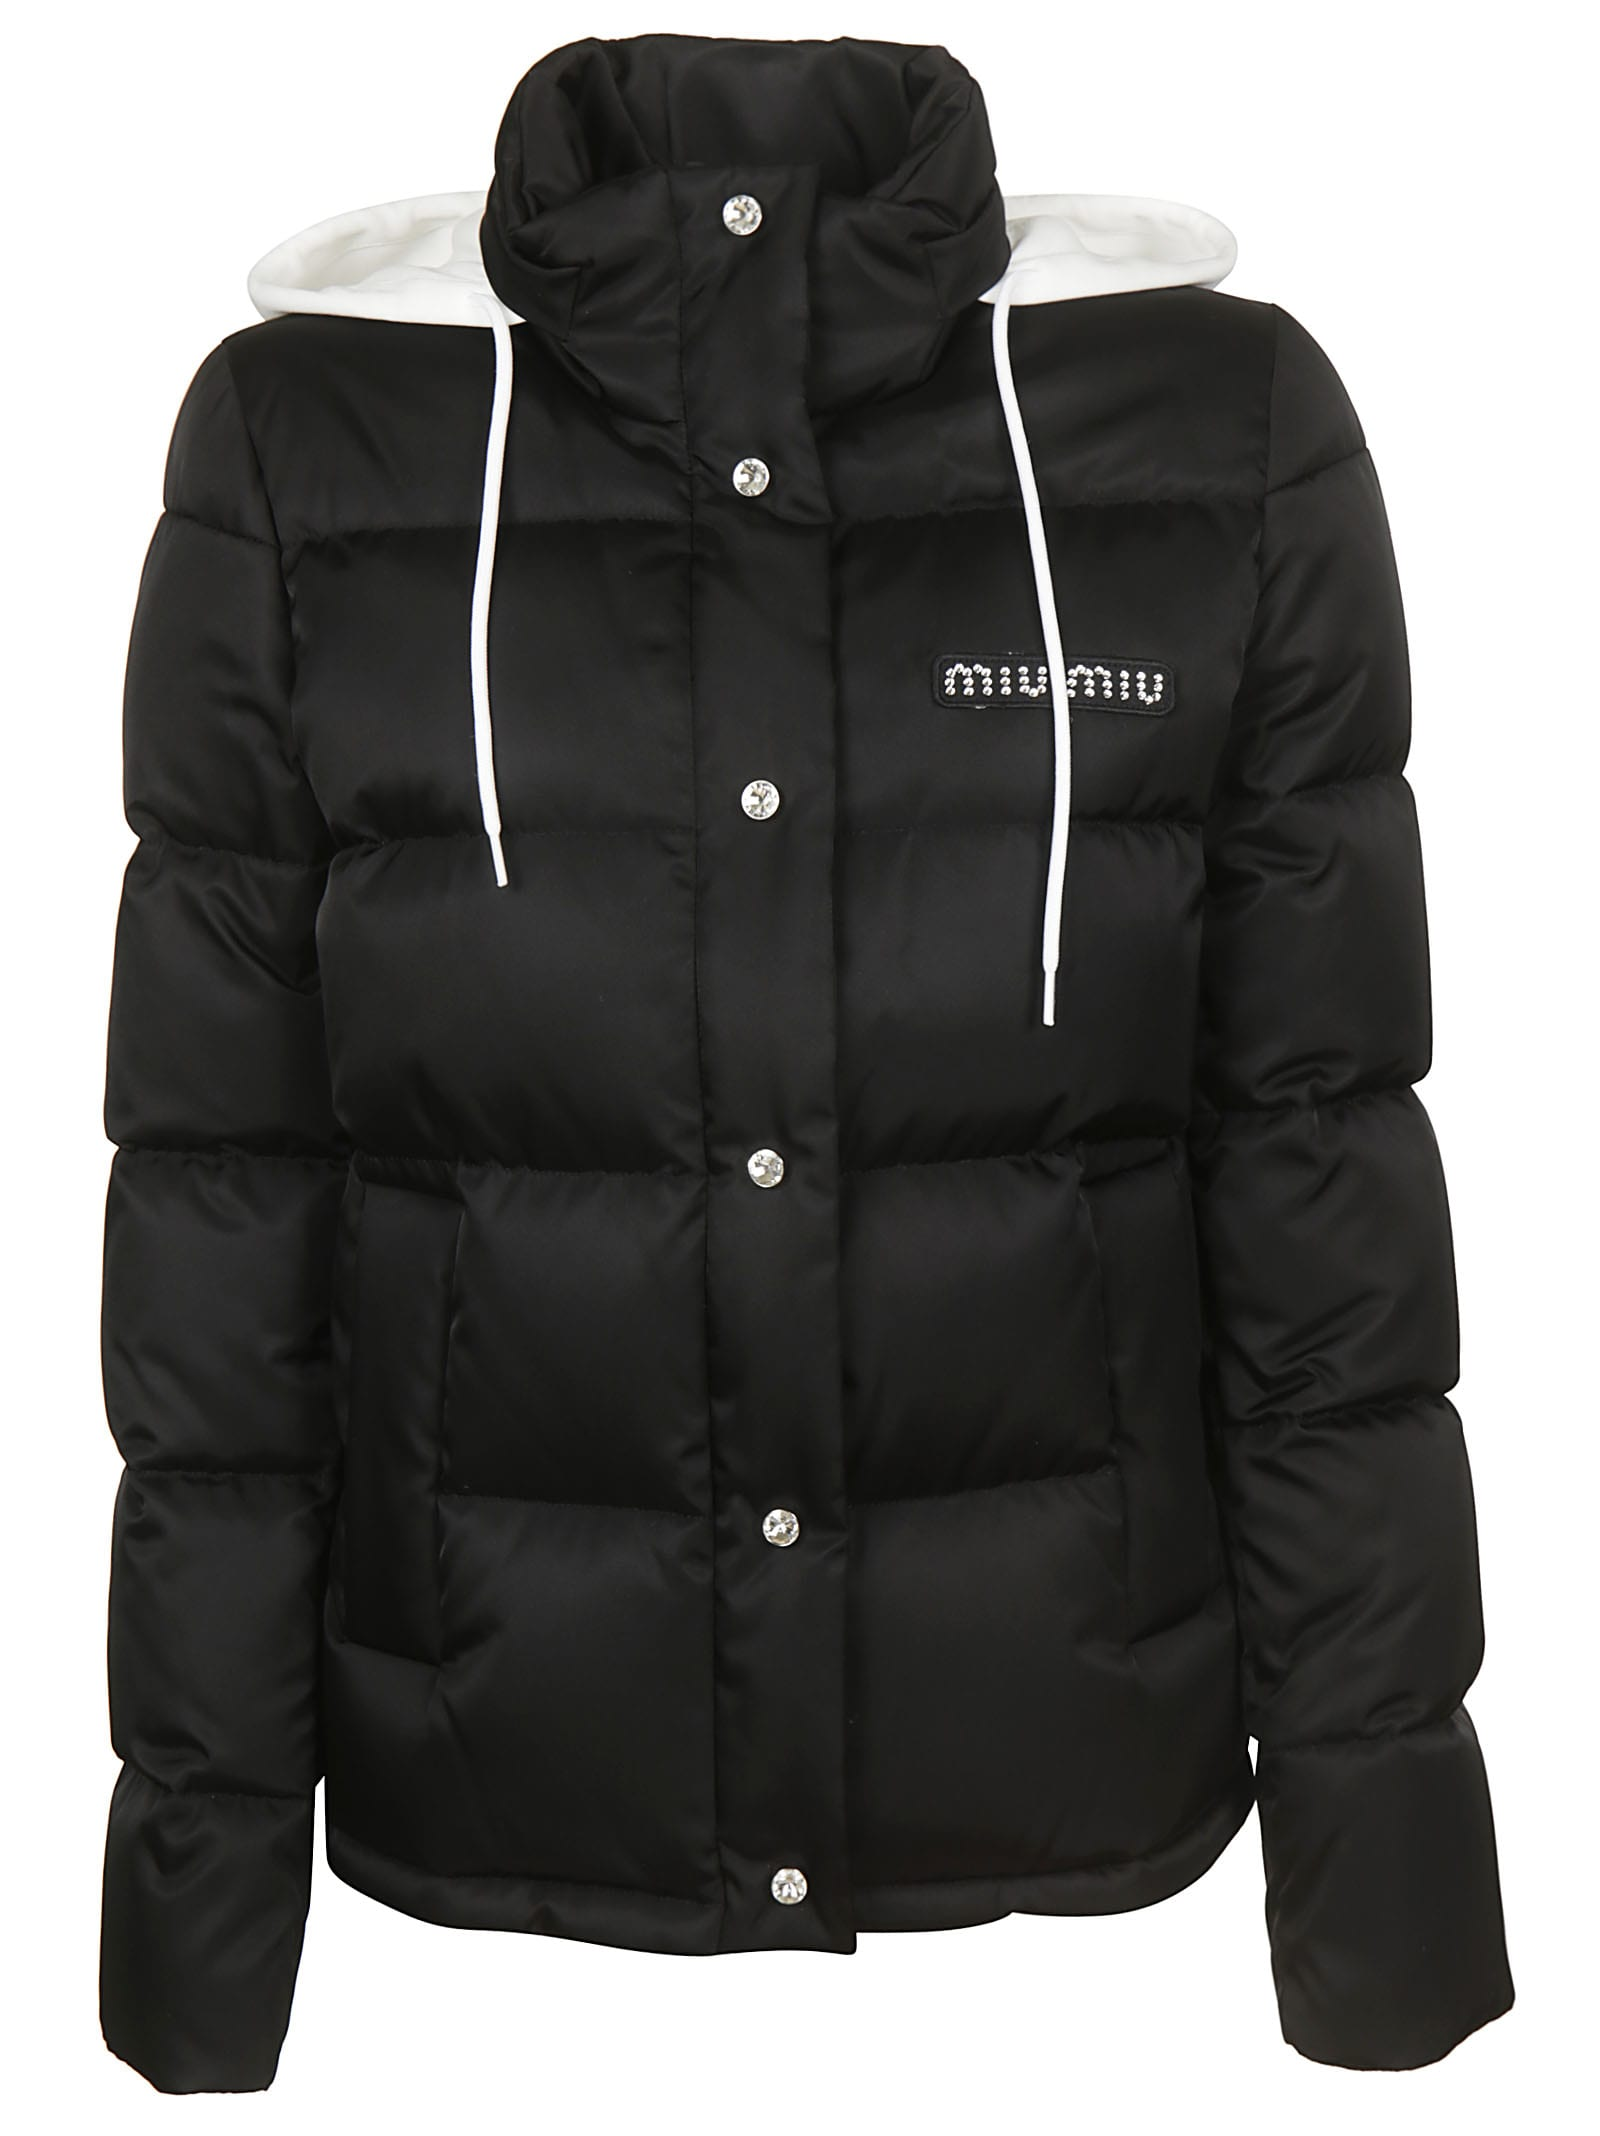 Miu Miu Logo Patch Down Jacket